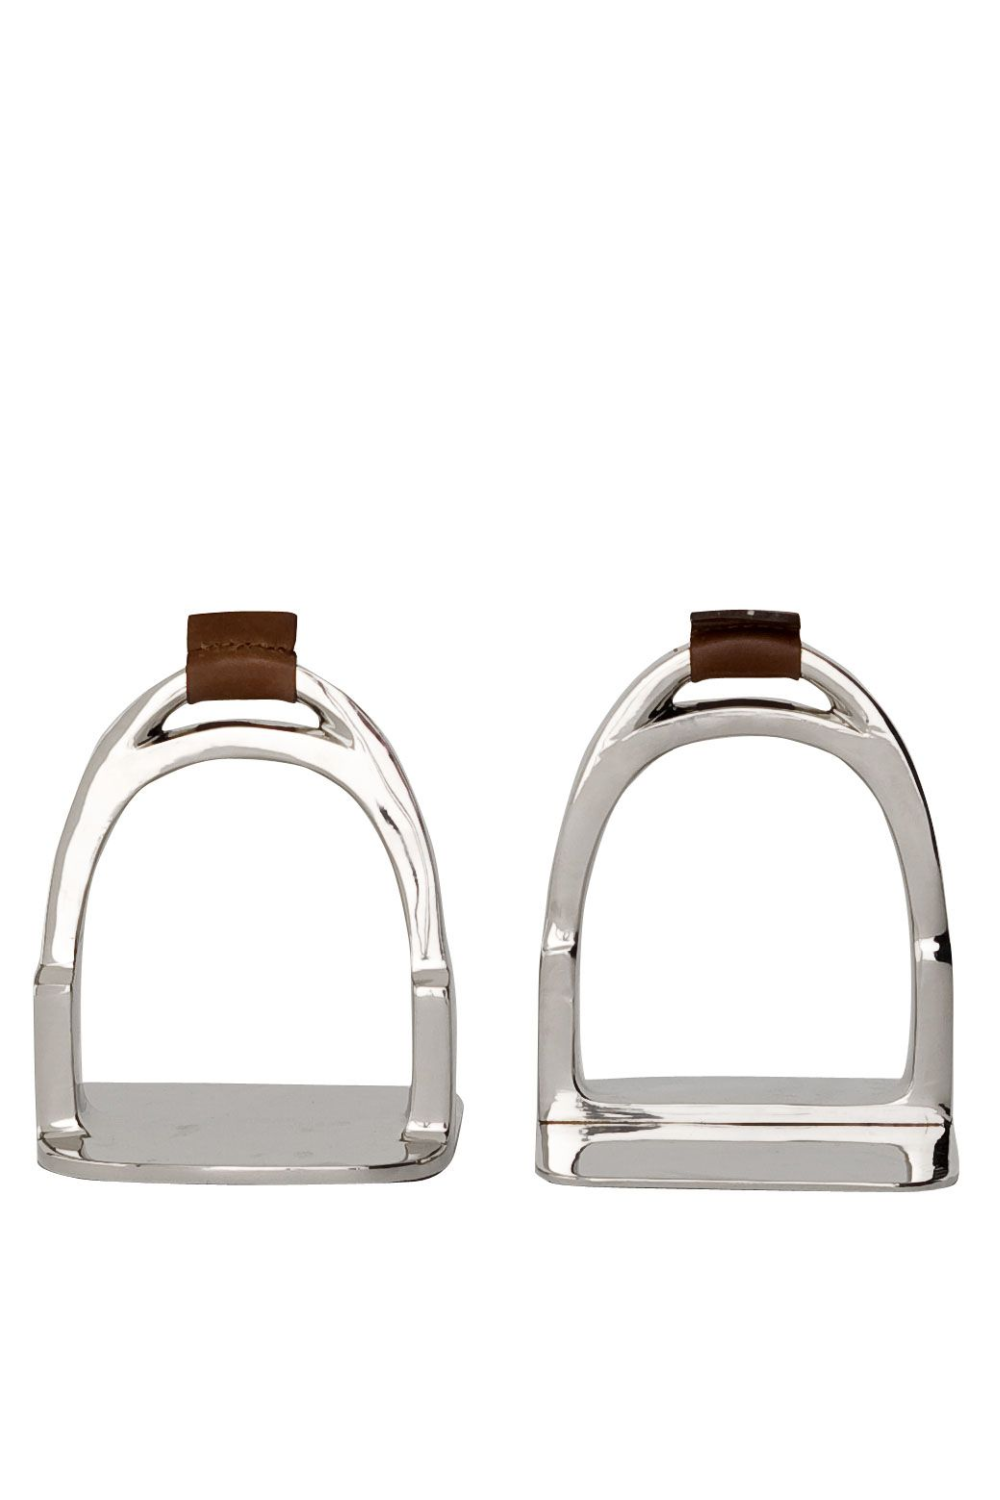 Horseshoe bookends (set of 2) | Eichholtz | OROA Modern Furniture